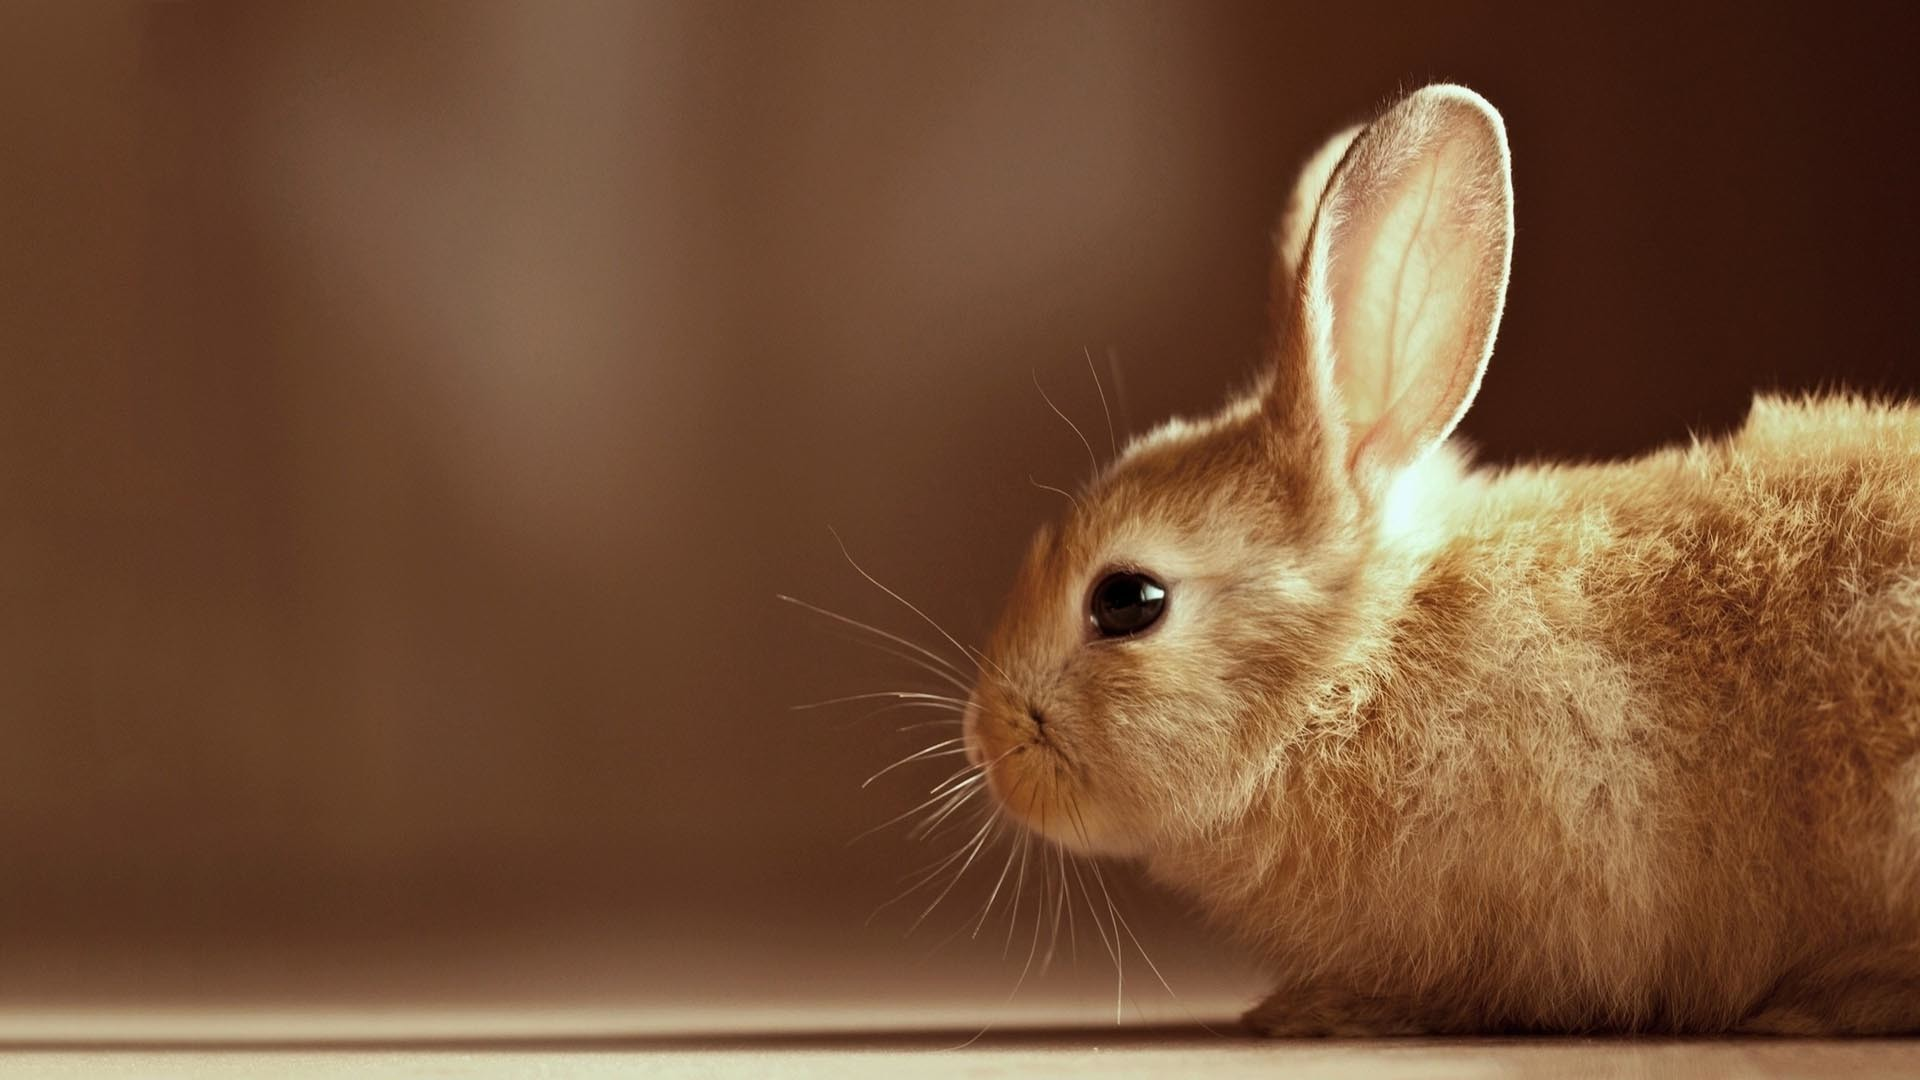 Cute Baby Bunny Widescreen Wallpaper HD   Best Quality HD Wallpapers